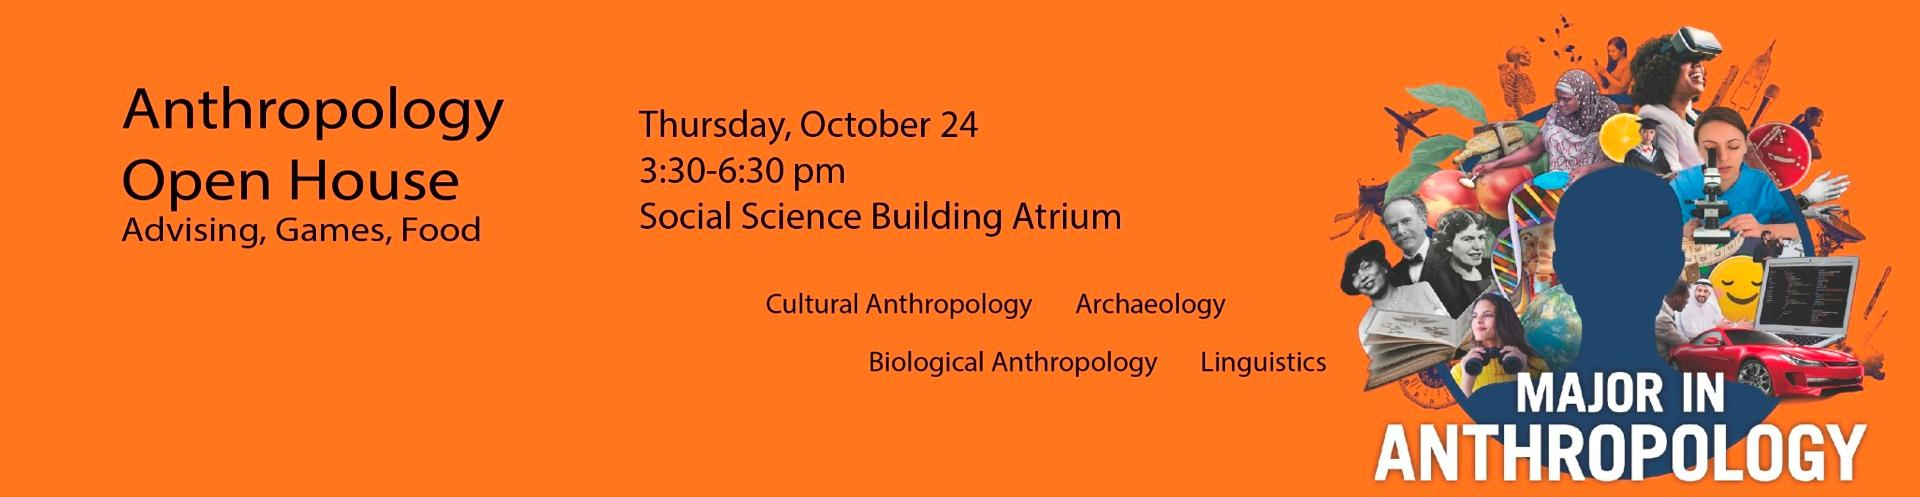 Anthropology Open House